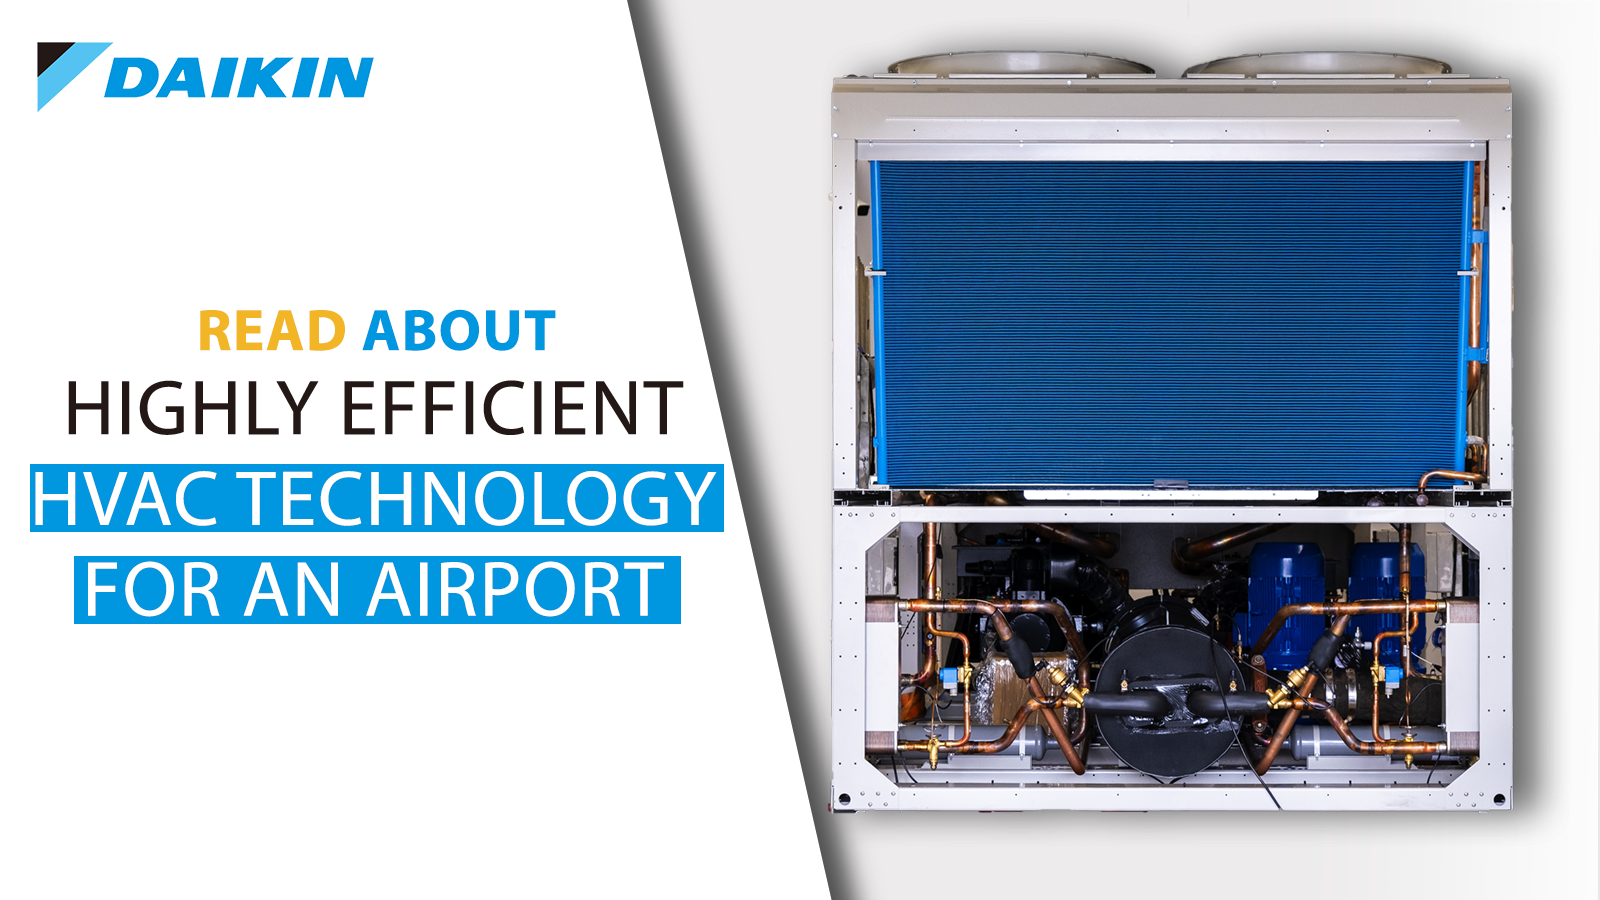 HVAC technology for an airport